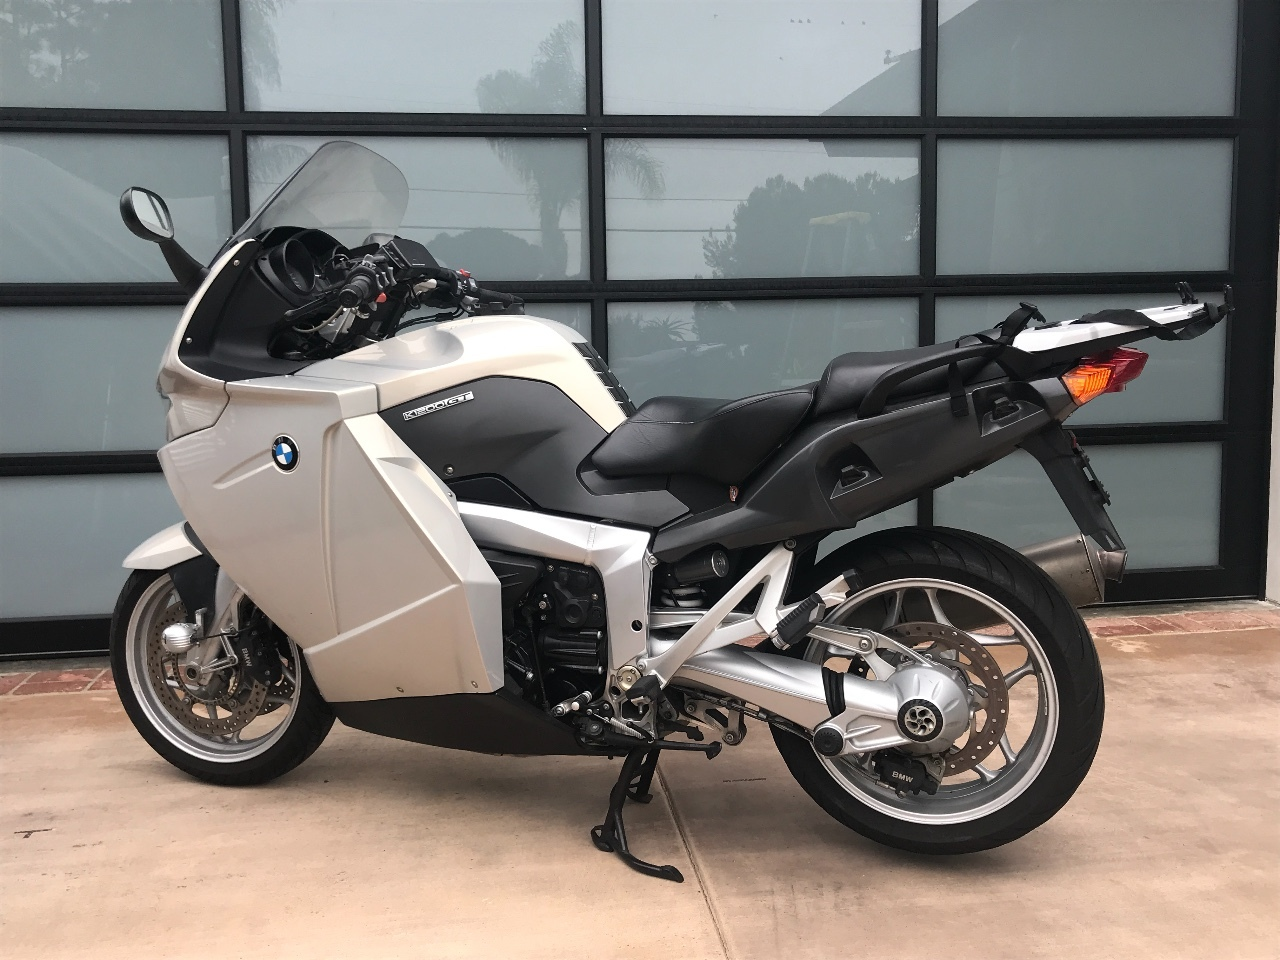 Used K 1200 Lt For Sale - BMW Motorcycles - Cycle Trader